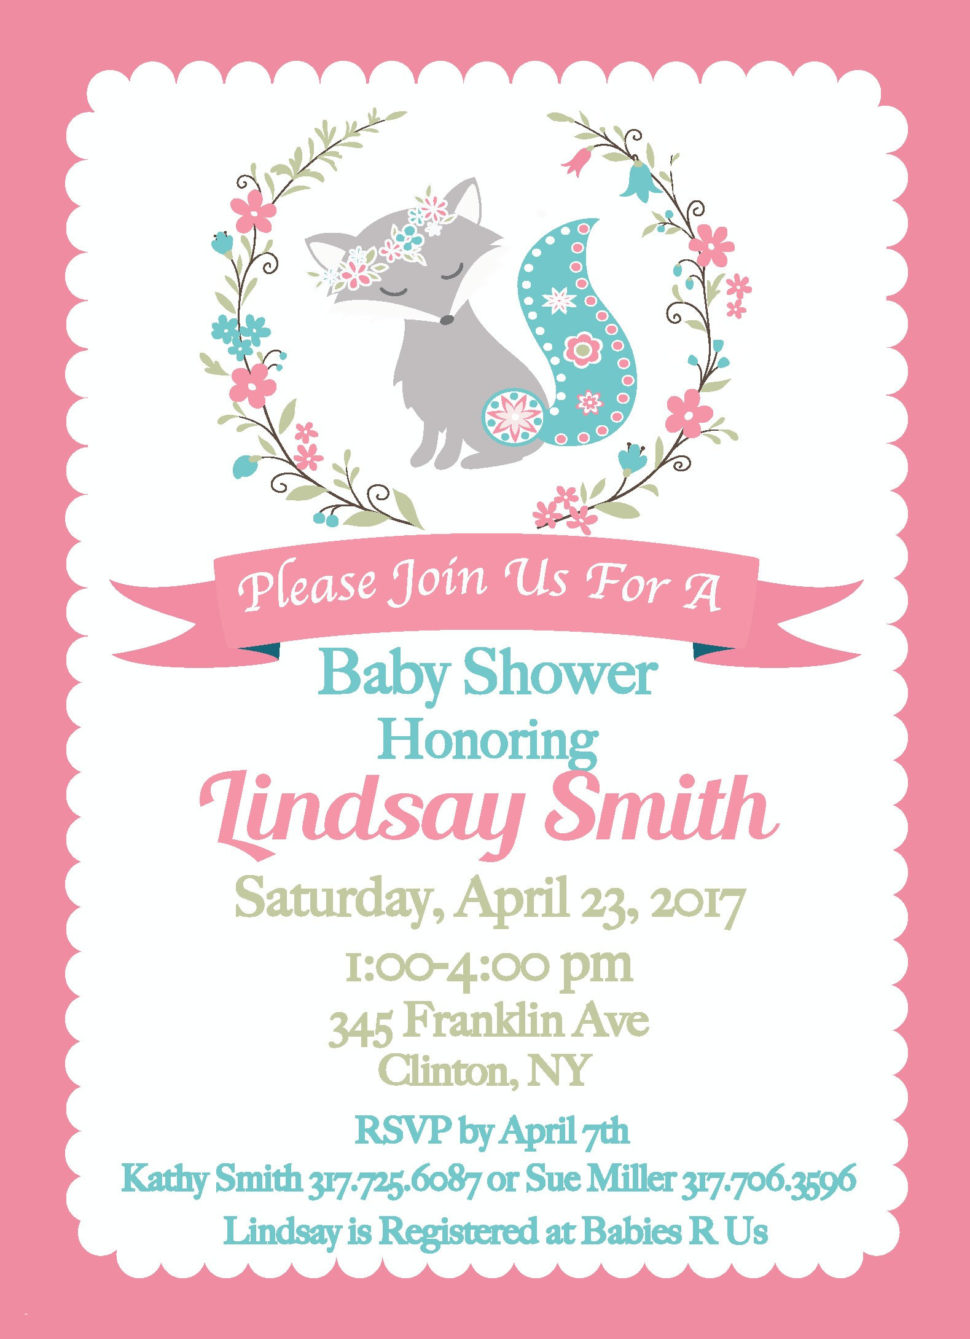 Medium Size of Baby Shower:63+ Delightful Cheap Baby Shower Invitations Image Inspirations Baby Shower Gifts For Girls Arreglos Para Baby Shower Baby Shower Gift Ideas Baby Shower Wording